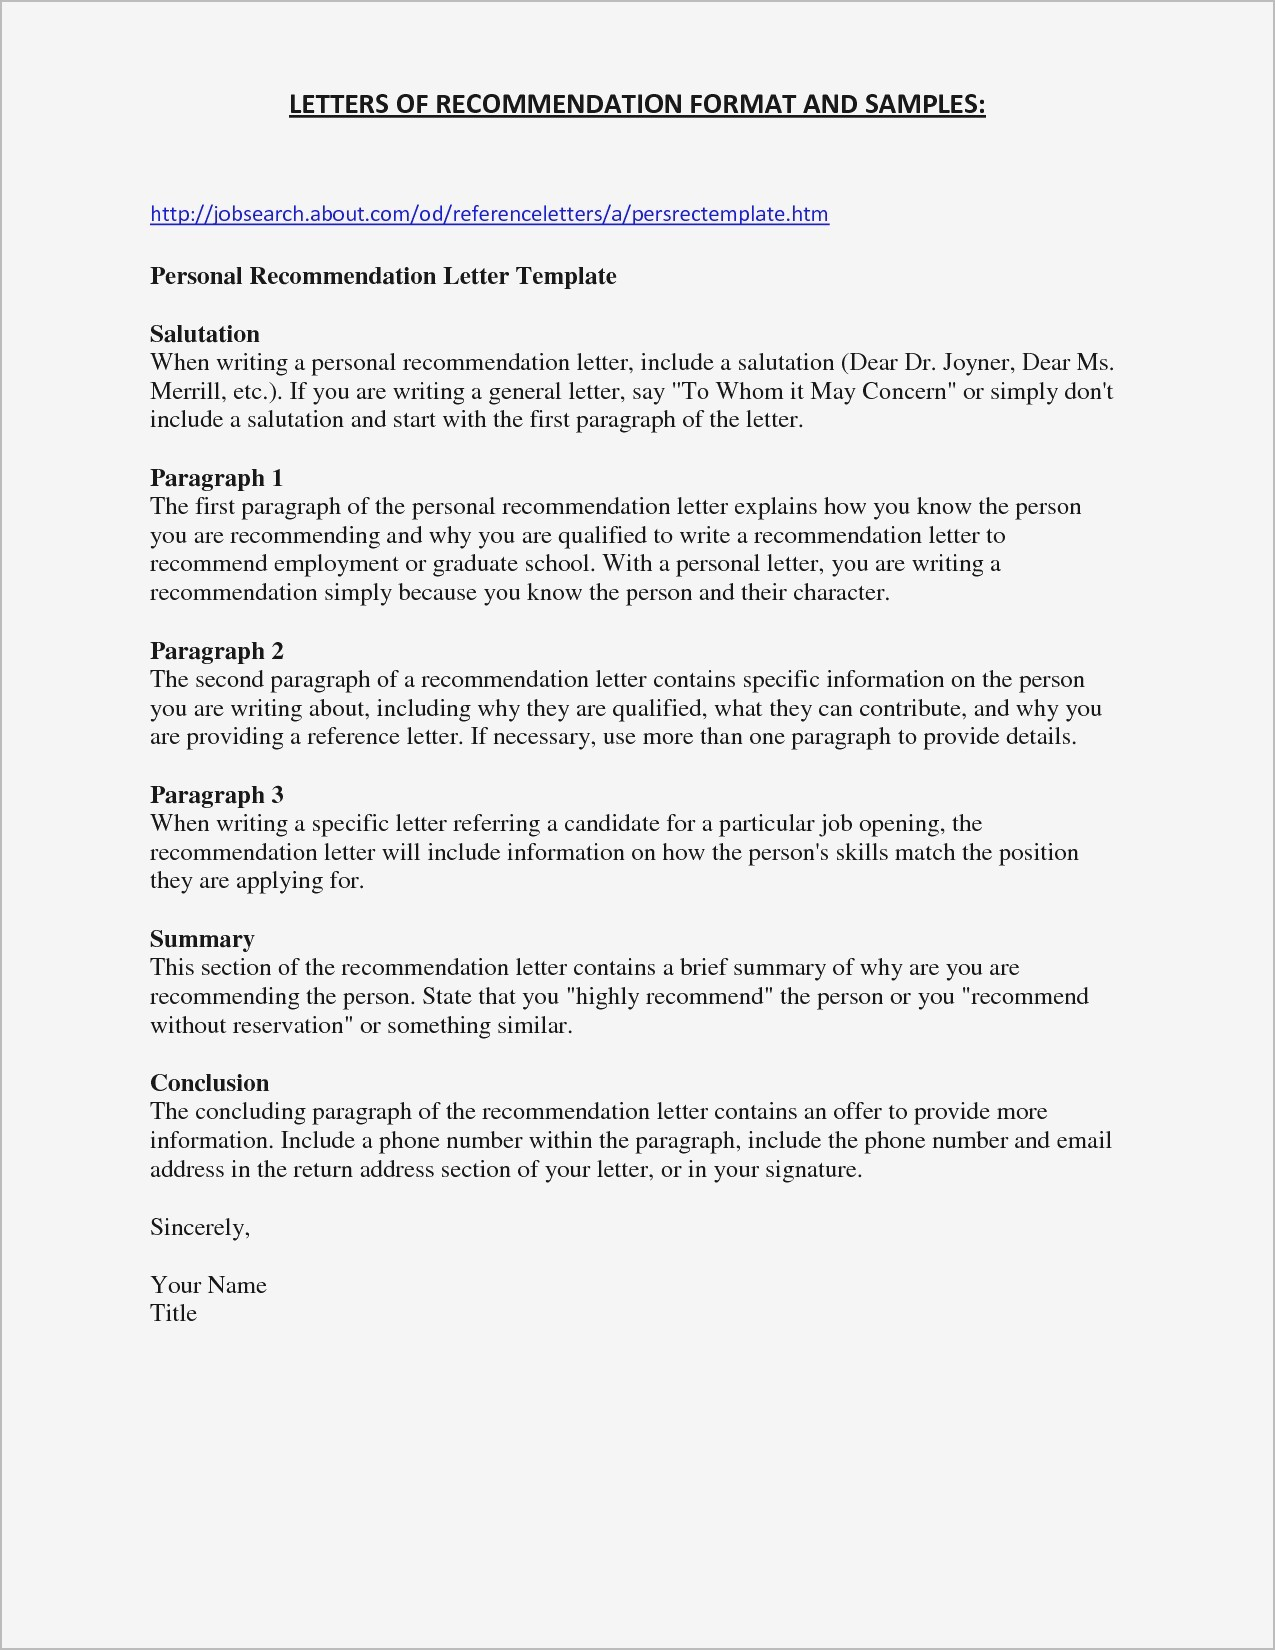 Personal Recommendation Letter Template - Personal Reference Letter for Job Valid Sample Personal Reference